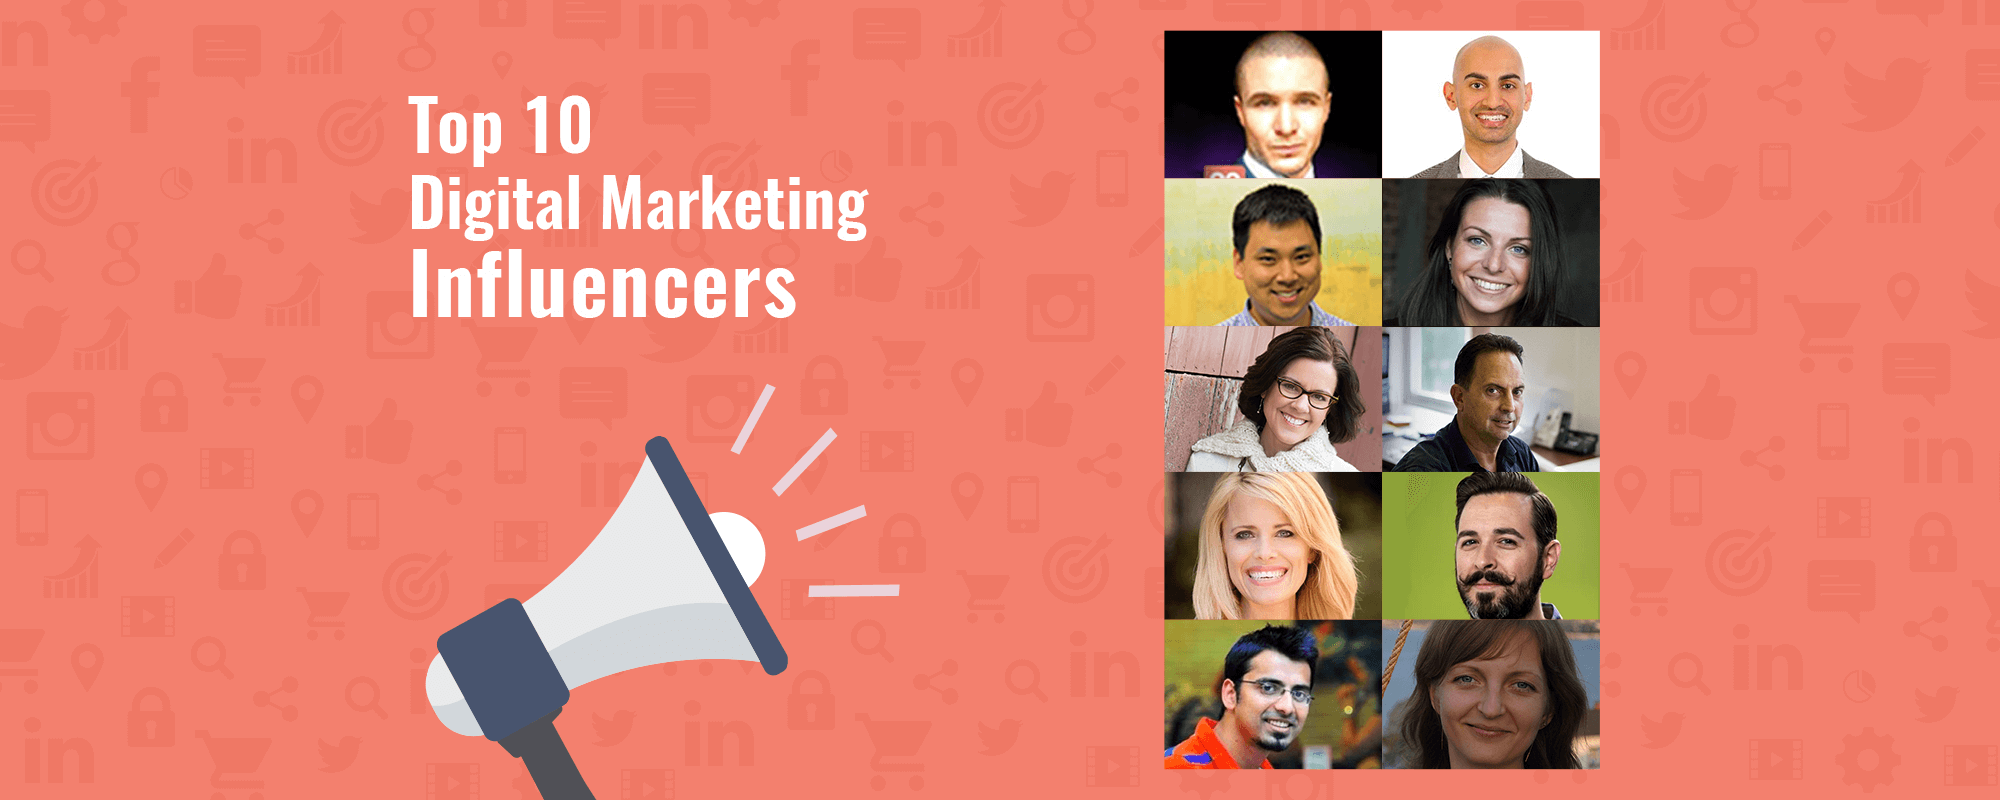 The Top 10 Influencers Followed on Web For Digital Marketing Insights